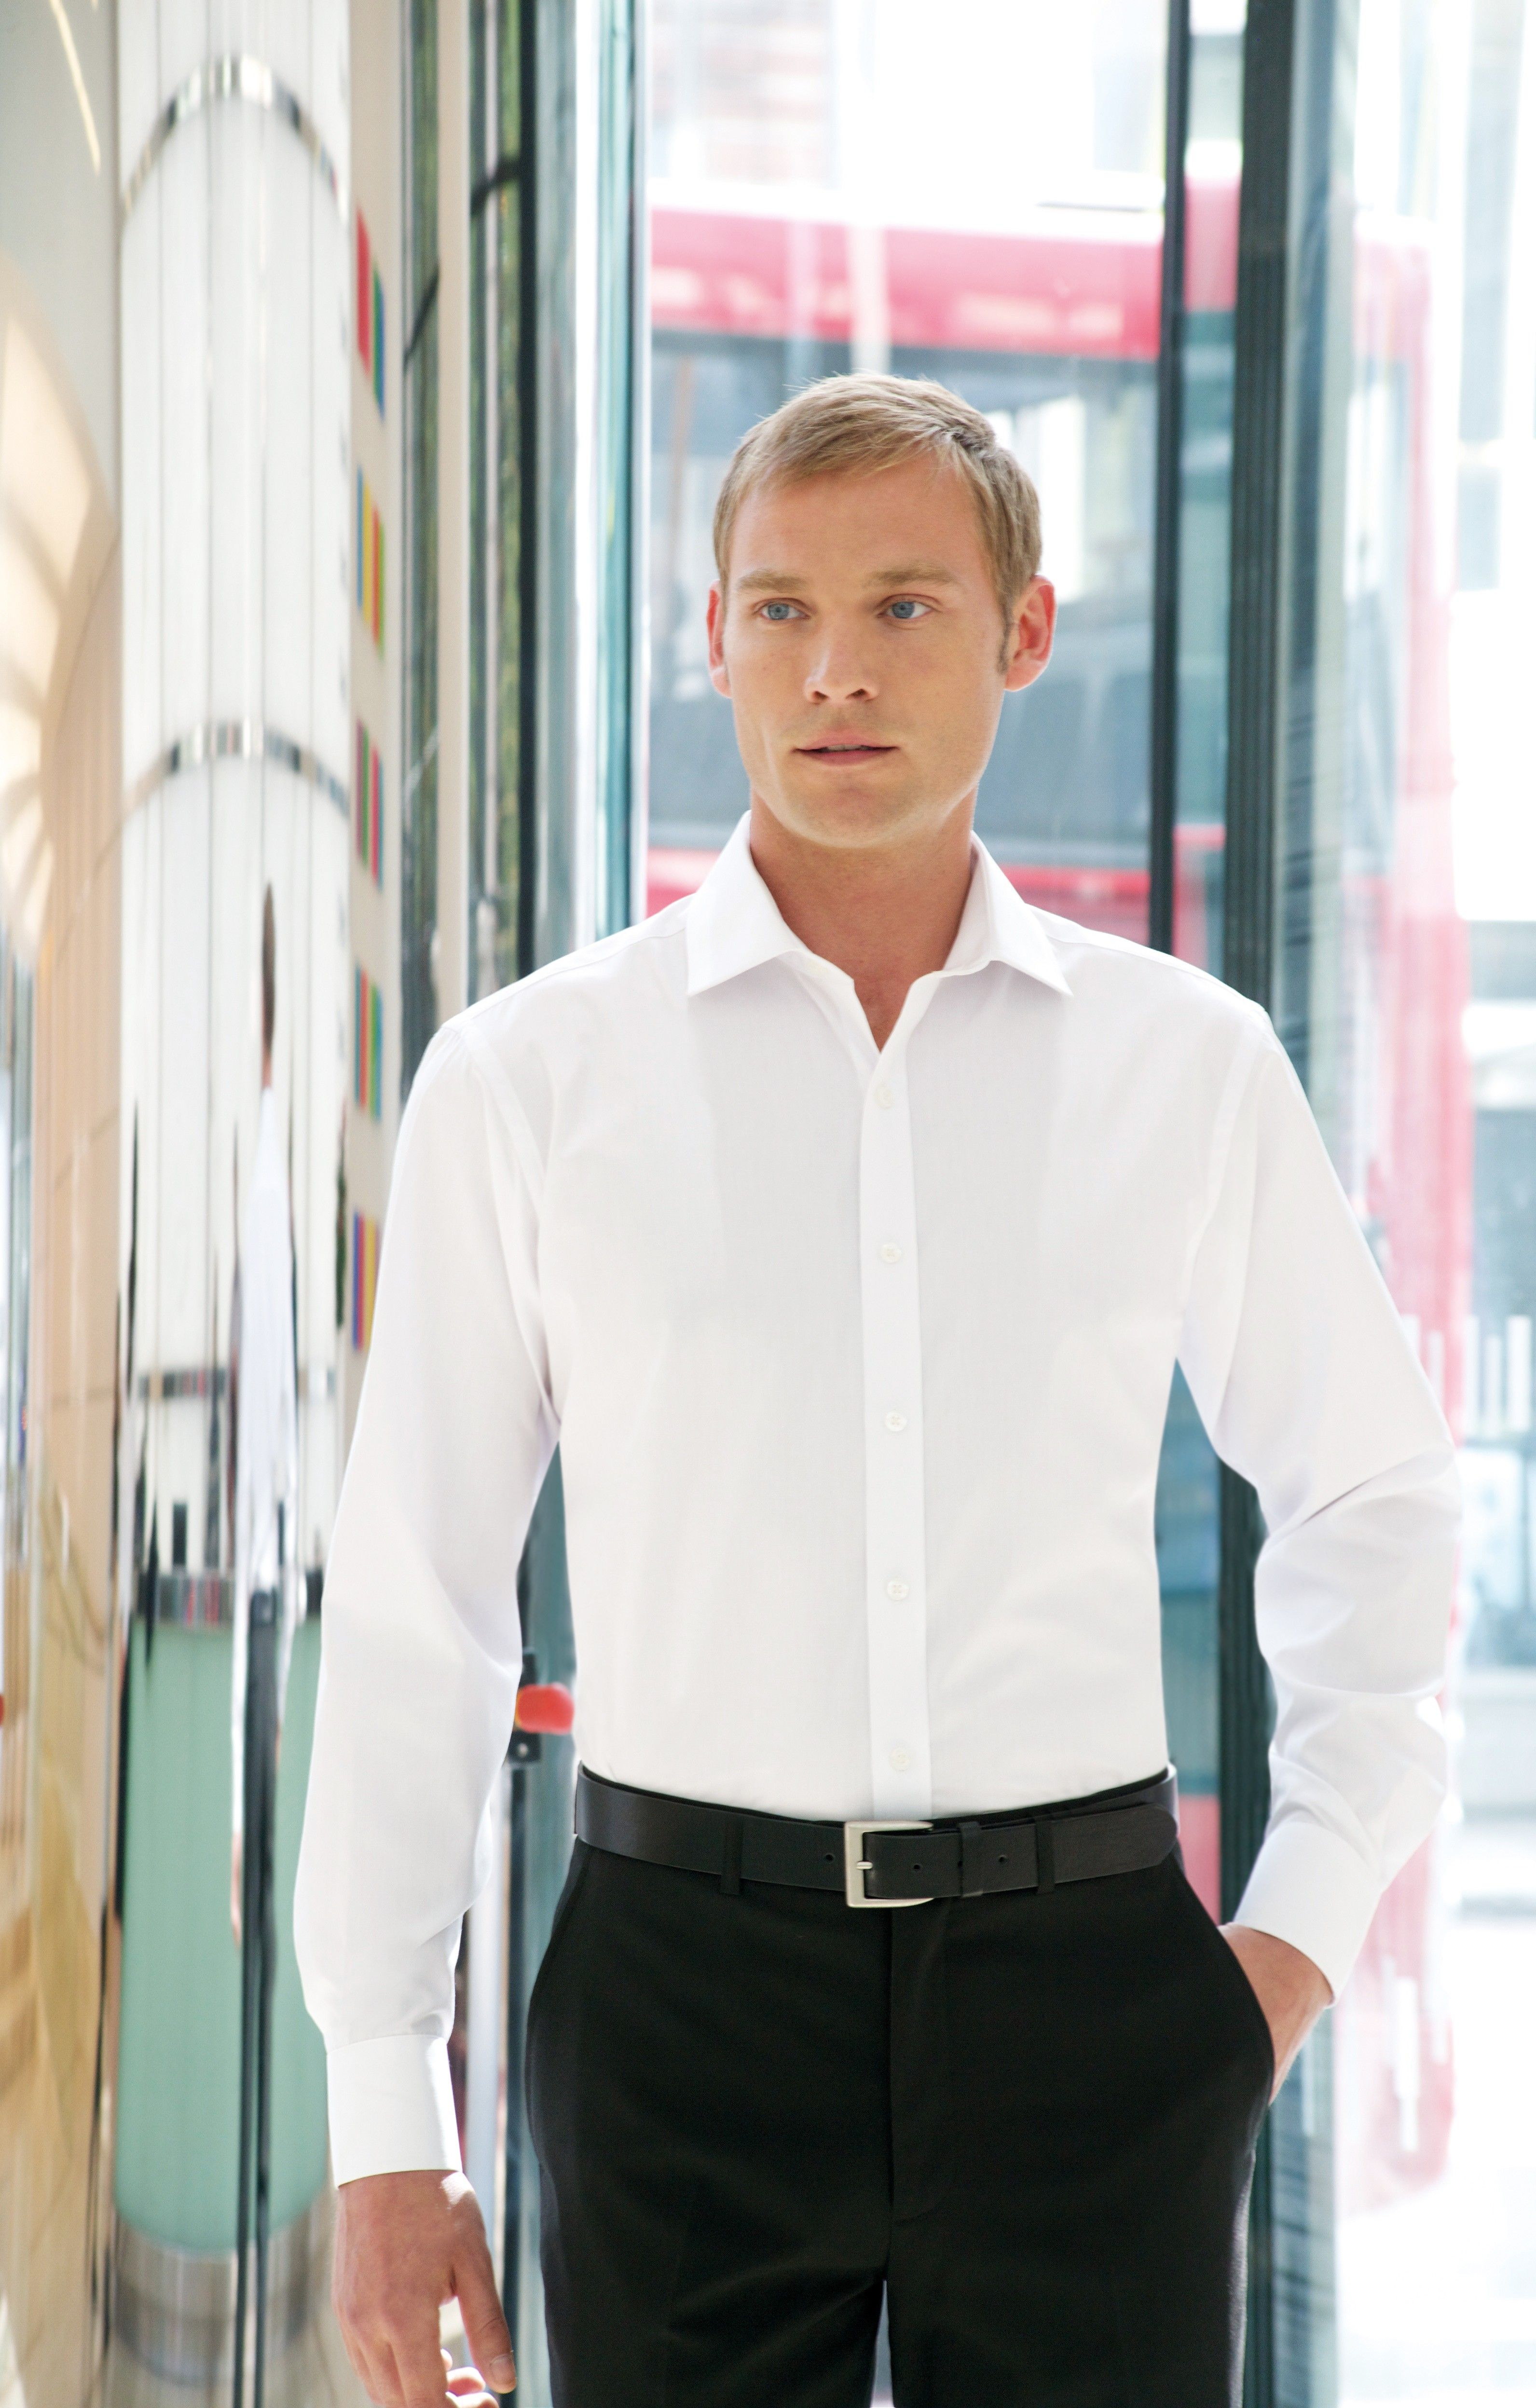 Alba Slim Fit L/S Mens Shirt Cotton Rich Easy-to-Iron - Our Collections